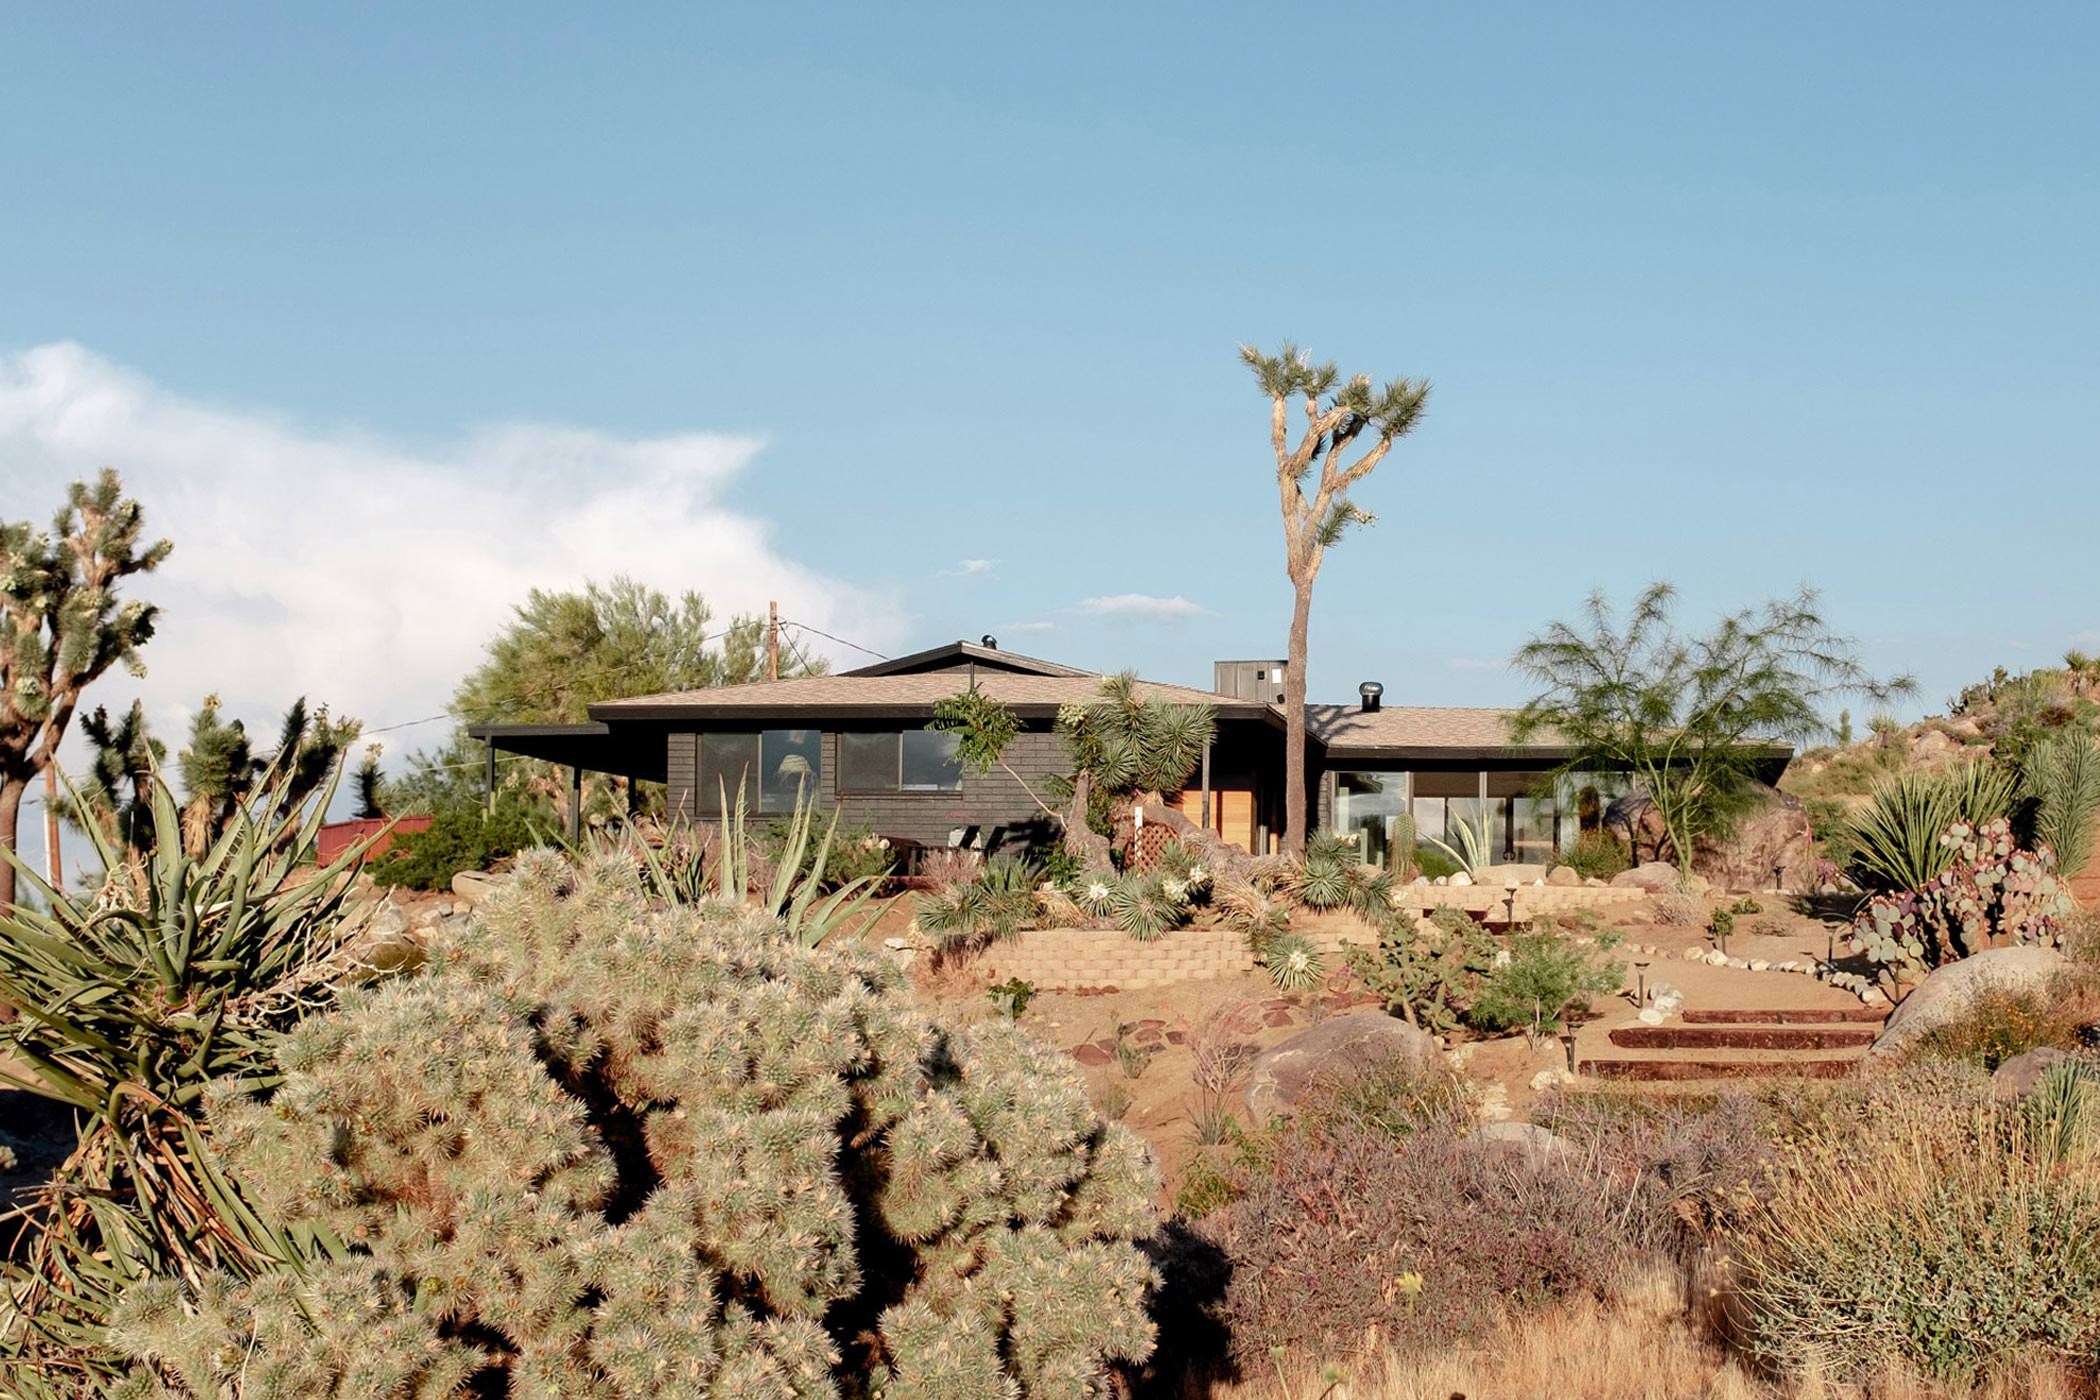 Villa Kuro, Guest House, Maison d'Hôtes, Joshua Tree National Park, Californie, USA